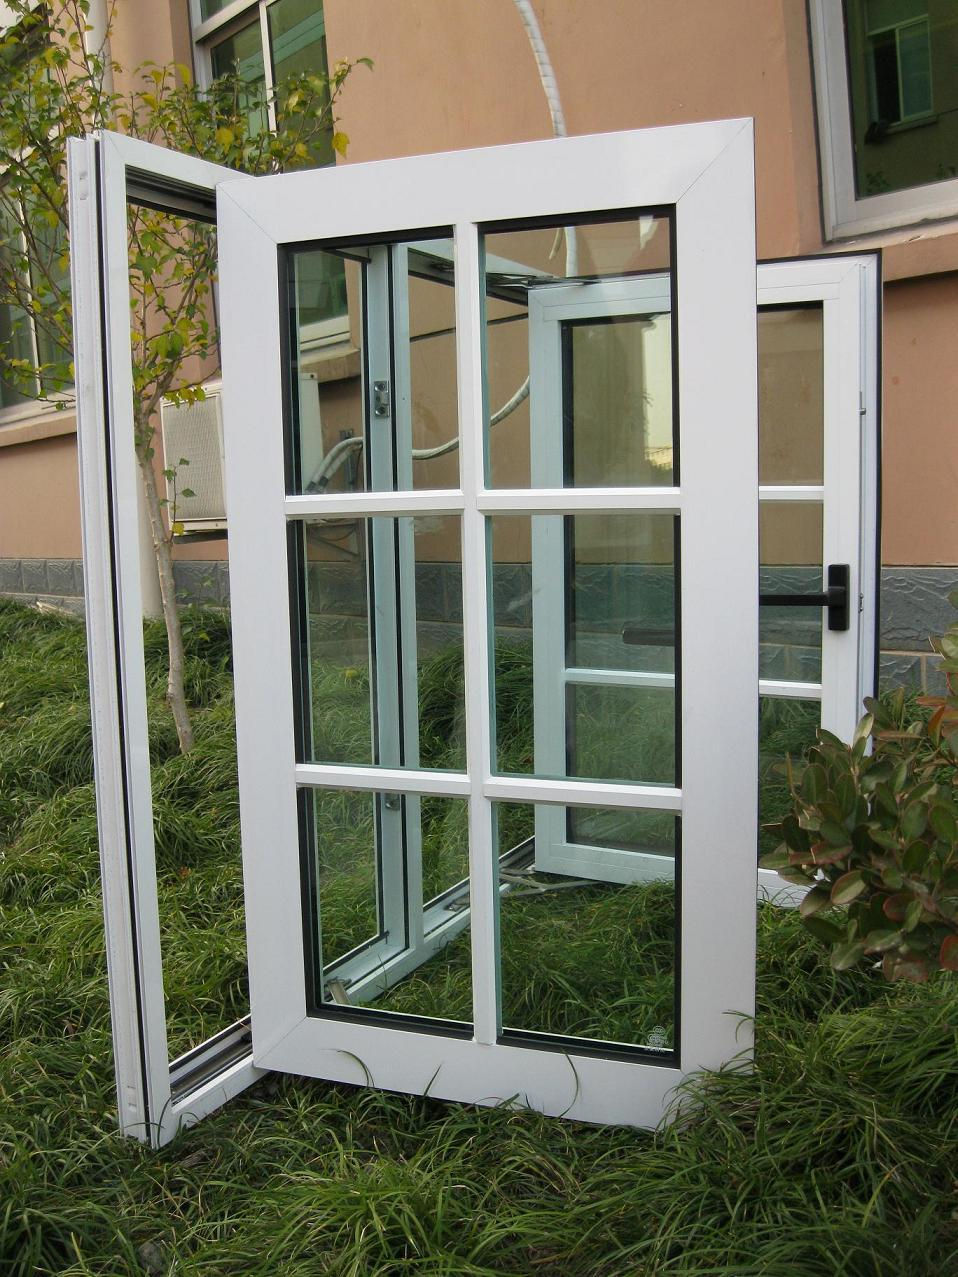 Window grill design and color - Modern Black Color Aluminum Frame Window Grill Design